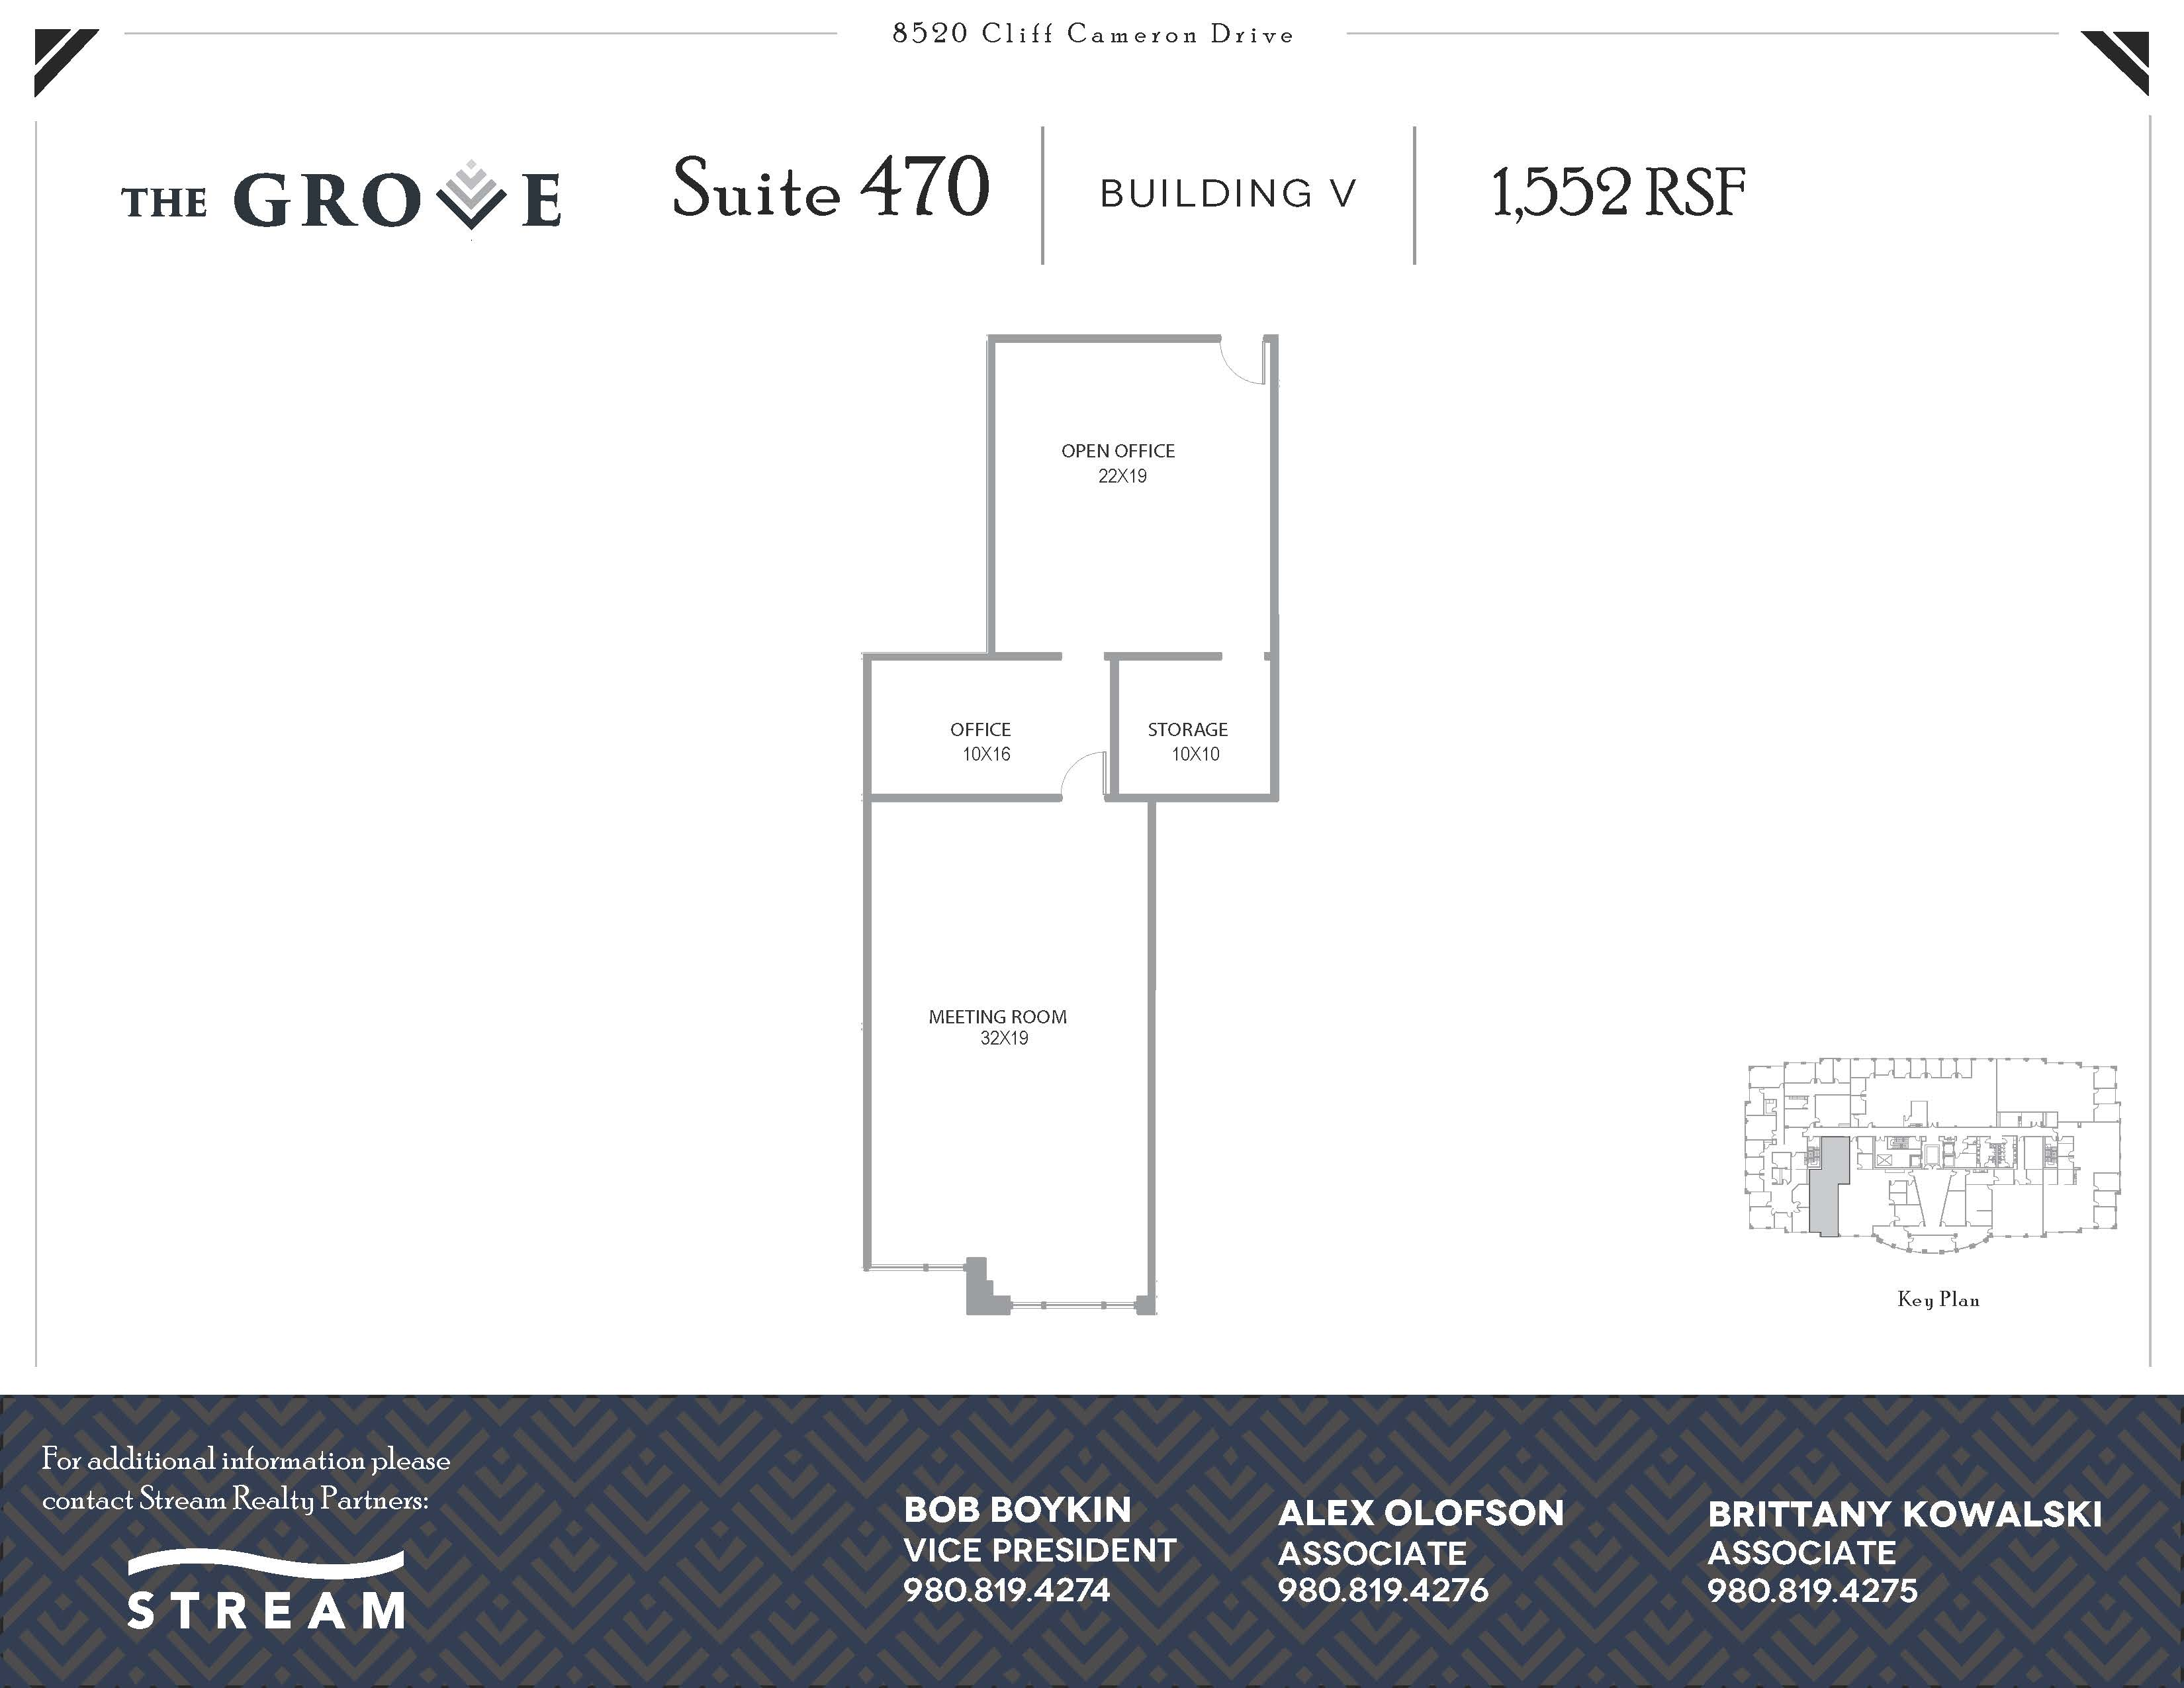 The Grove V [8520] -- Suite 470-- 1,552